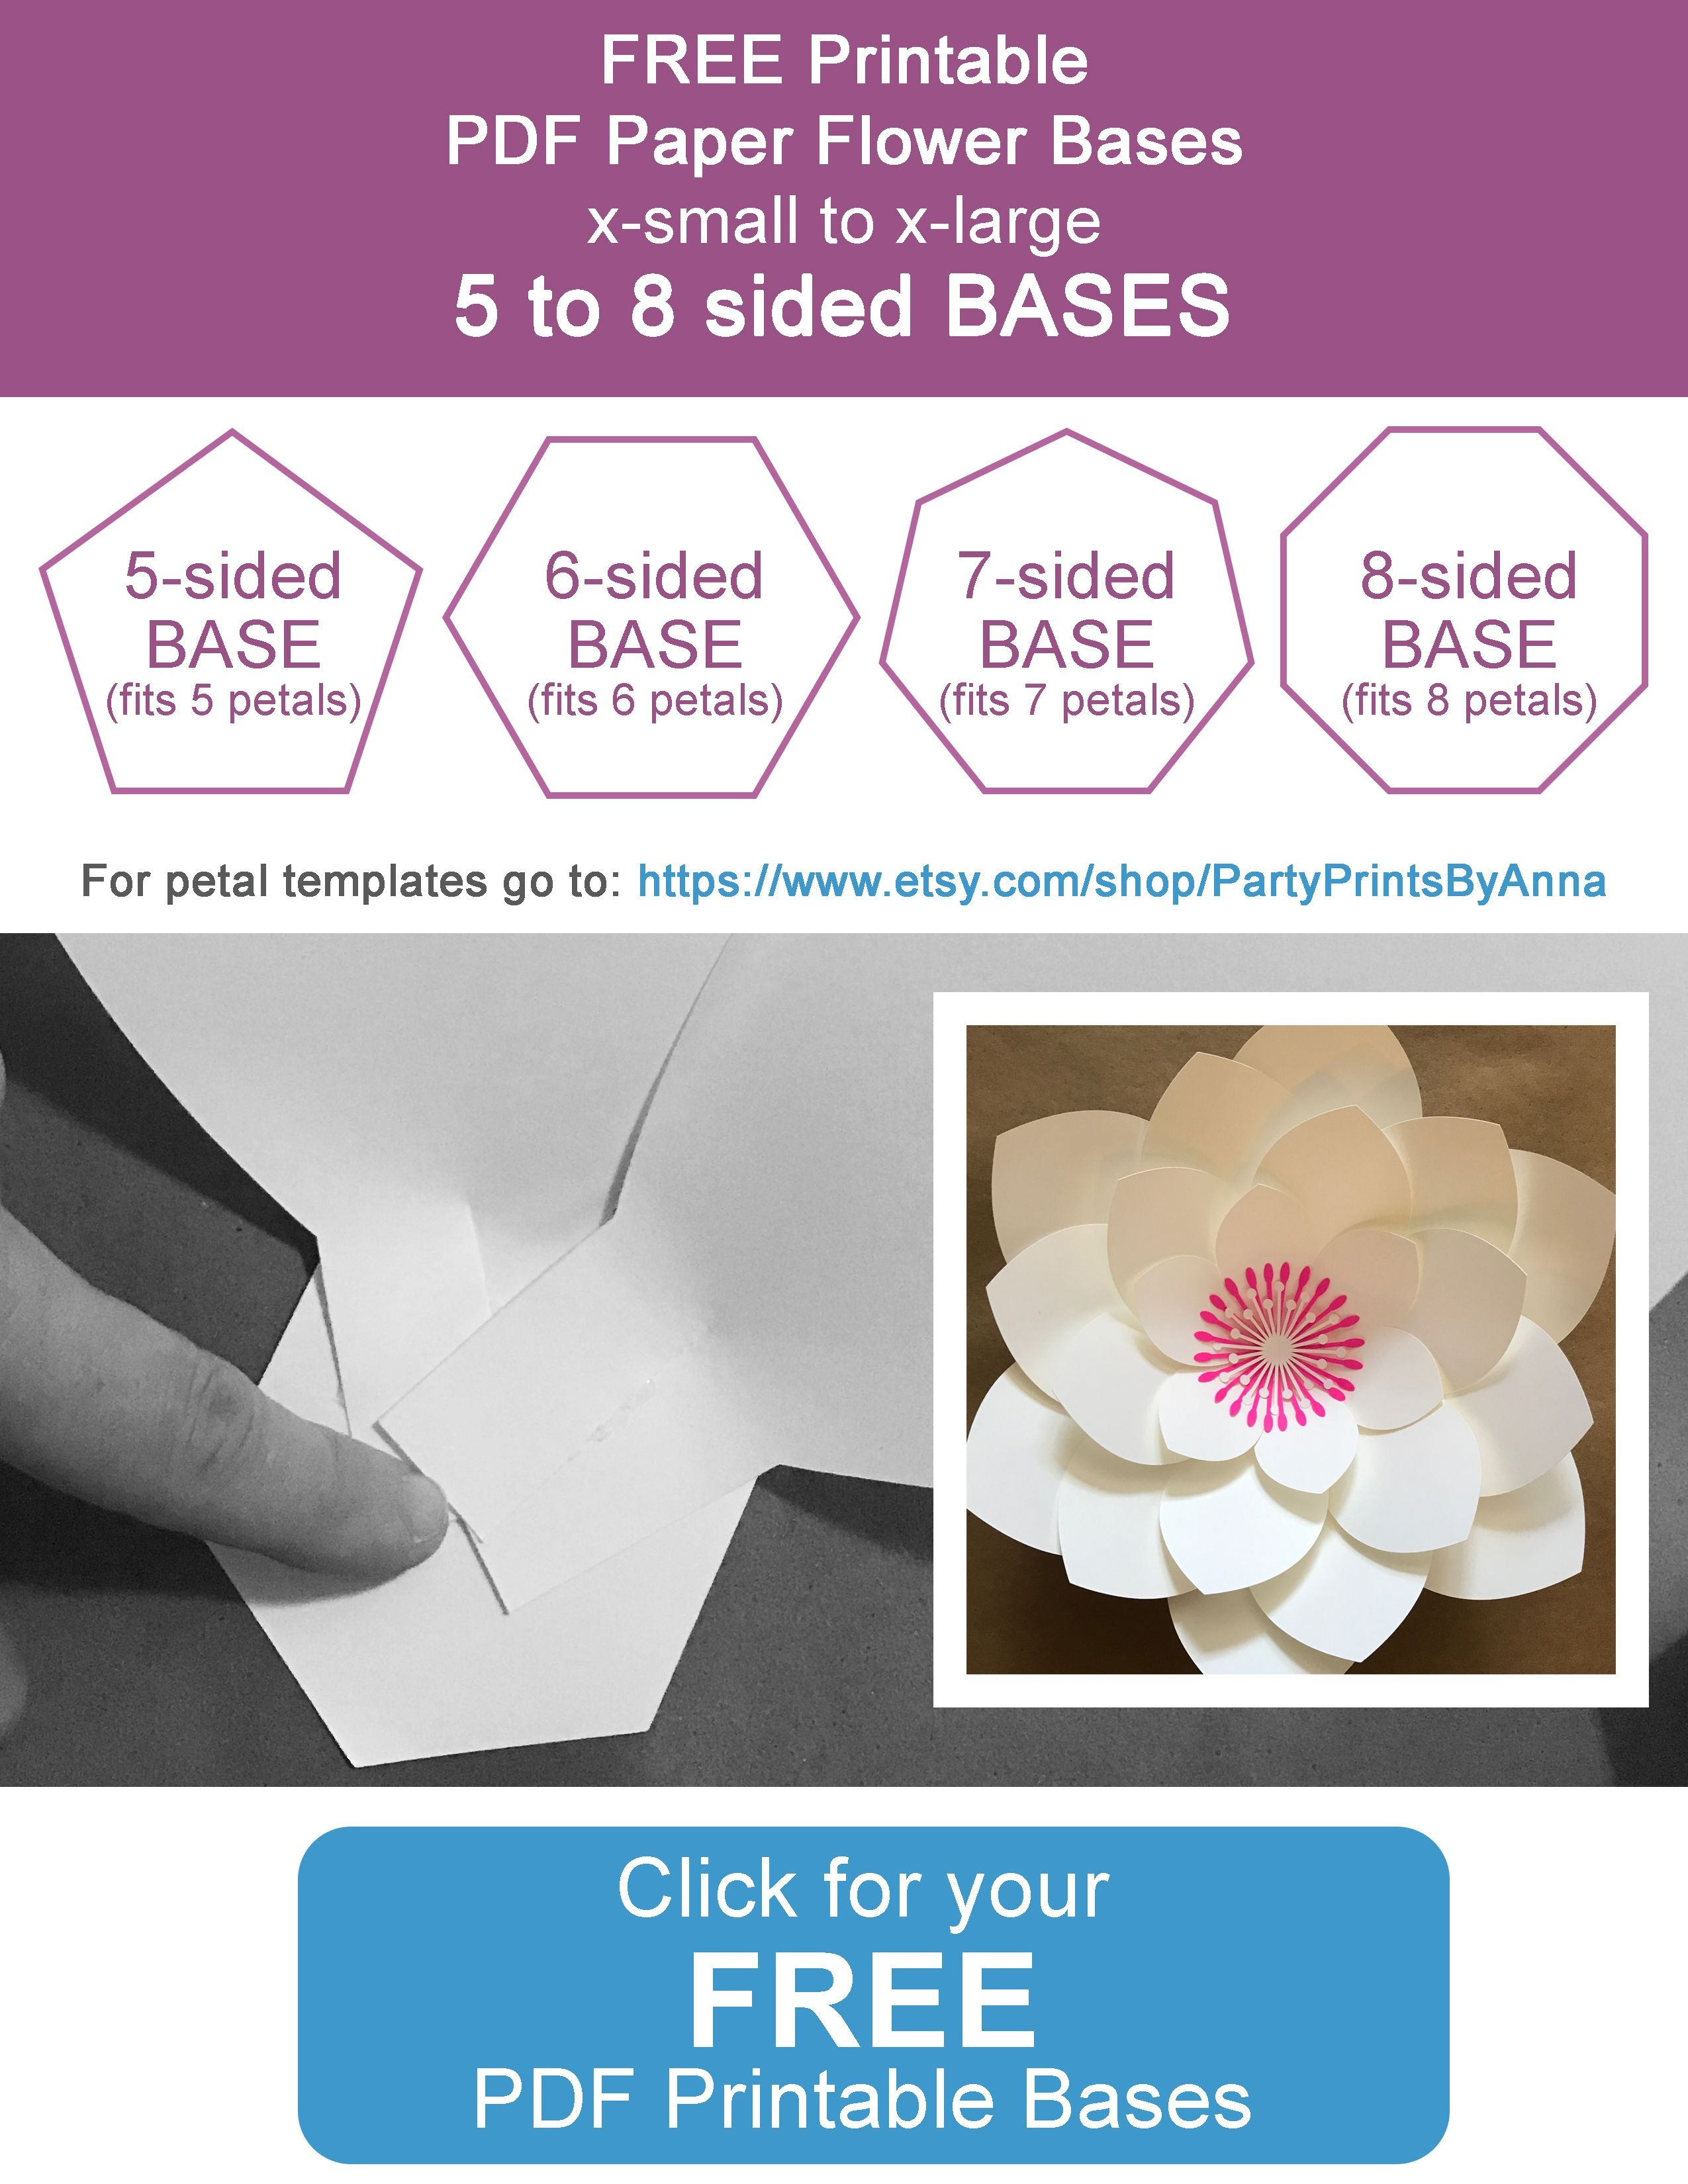 Free Printable Paper Flower Bases (5-8 Sided)   Flower Temple   Free - Free Printable Templates For Large Paper Flowers